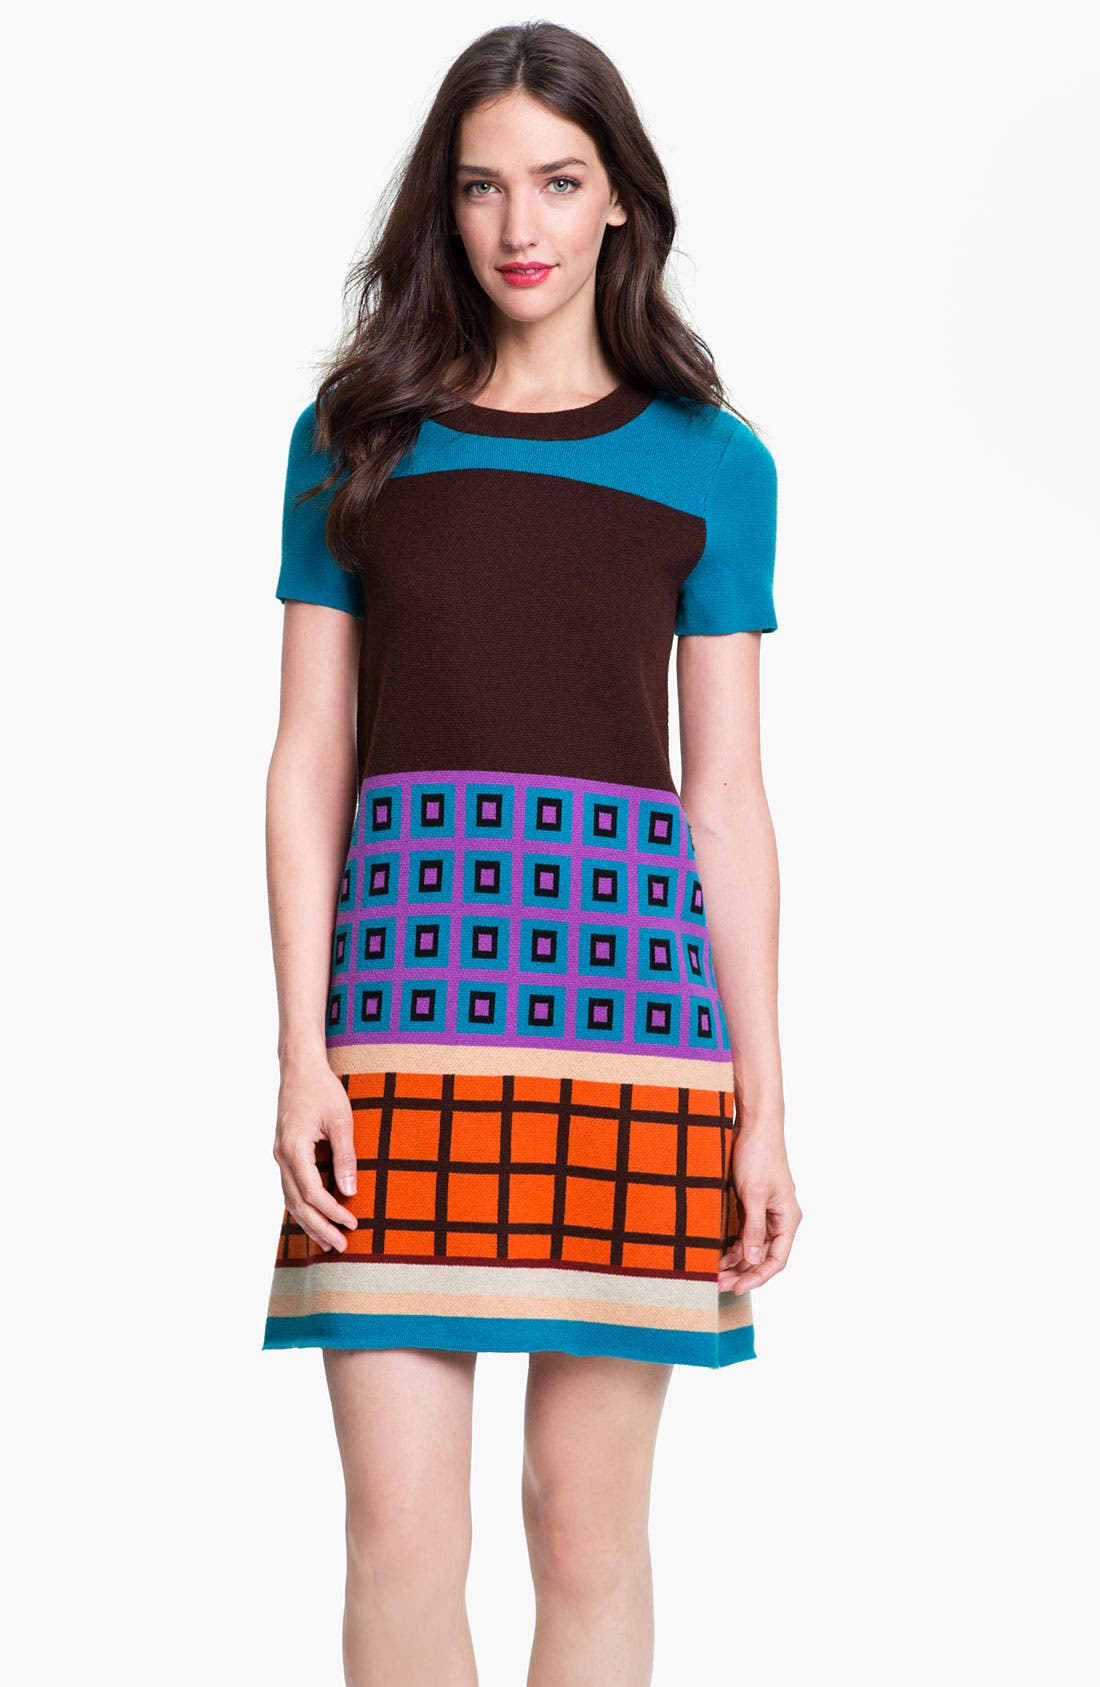 Main Image - kate spade new york 'freyda' wool blend sweater shift dress